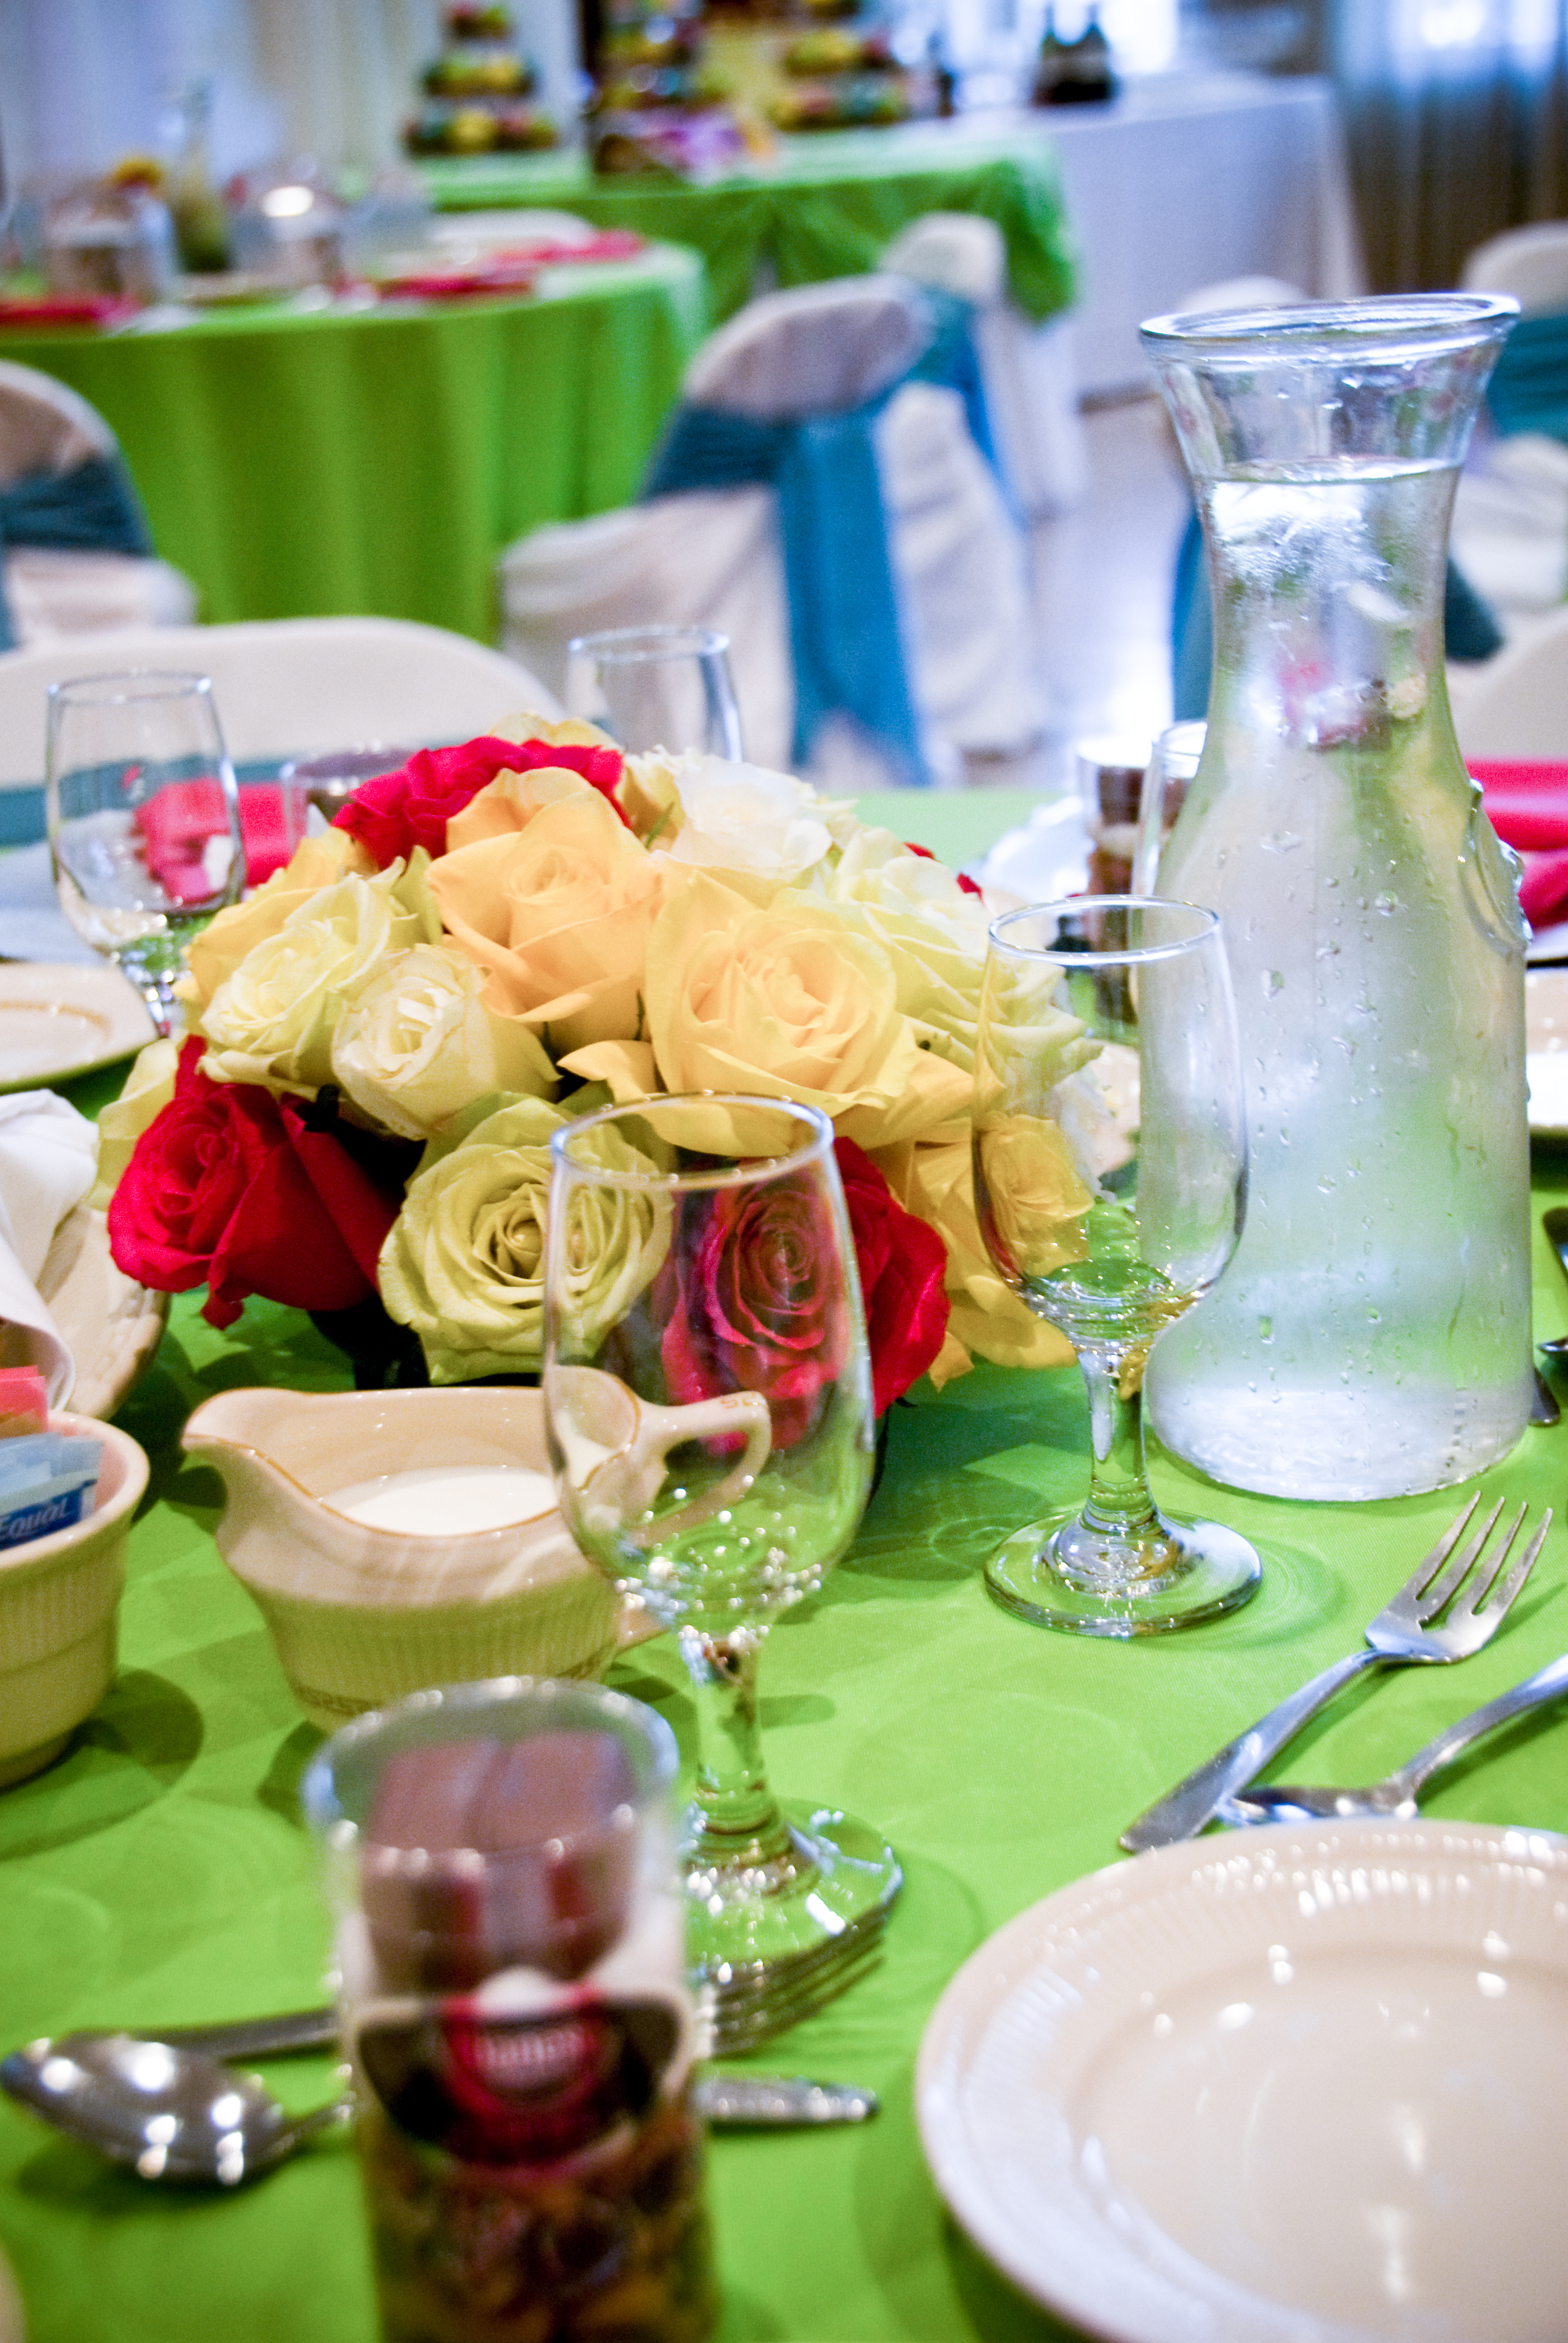 Reception, Flowers & Decor, white, yellow, pink, green, Centerpieces, Summer, Flowers, Lime, Wedding, Bright, Turquoise, Chaircovers